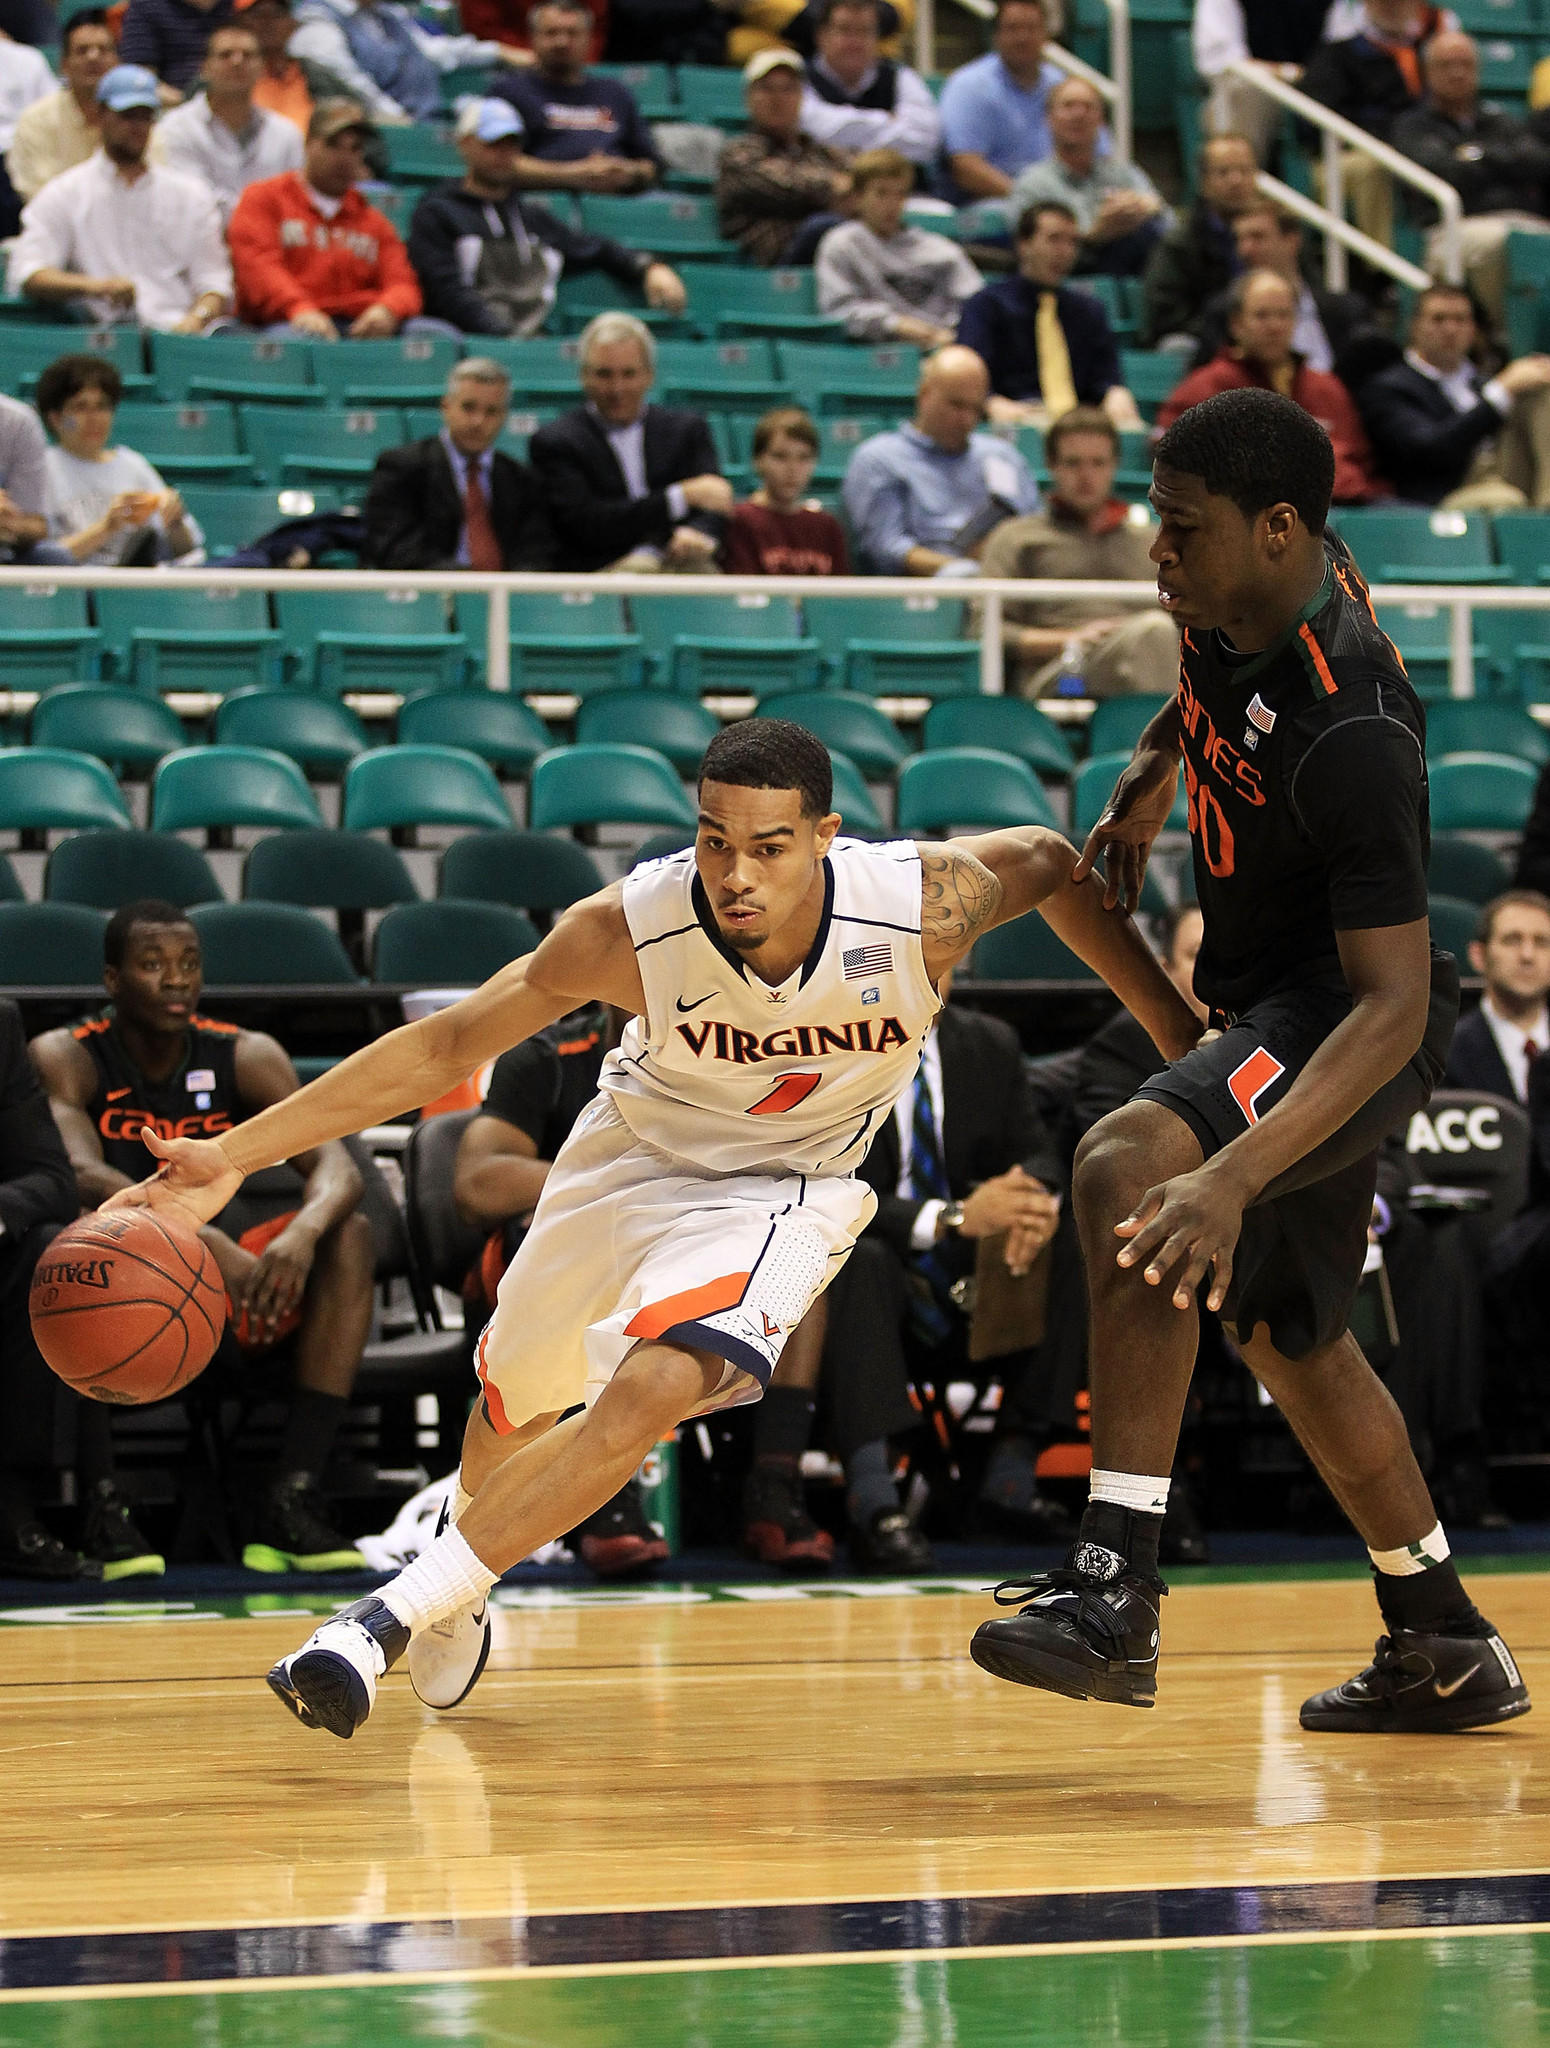 GREENSBORO, NC - MARCH 10: Mustapha Farrakhan #2 of the Virginia Cavaliers drives against Adrian Thomas #30 of the Miami Hurricanes during the first half of the first round of the 2011 ACC men's basketball tournament at the Greensboro Coliseum on March 10, 2011 in Greensboro, North Carolina. (Photo by Streeter Lecka/Getty Images) ORG XMIT: 106150150